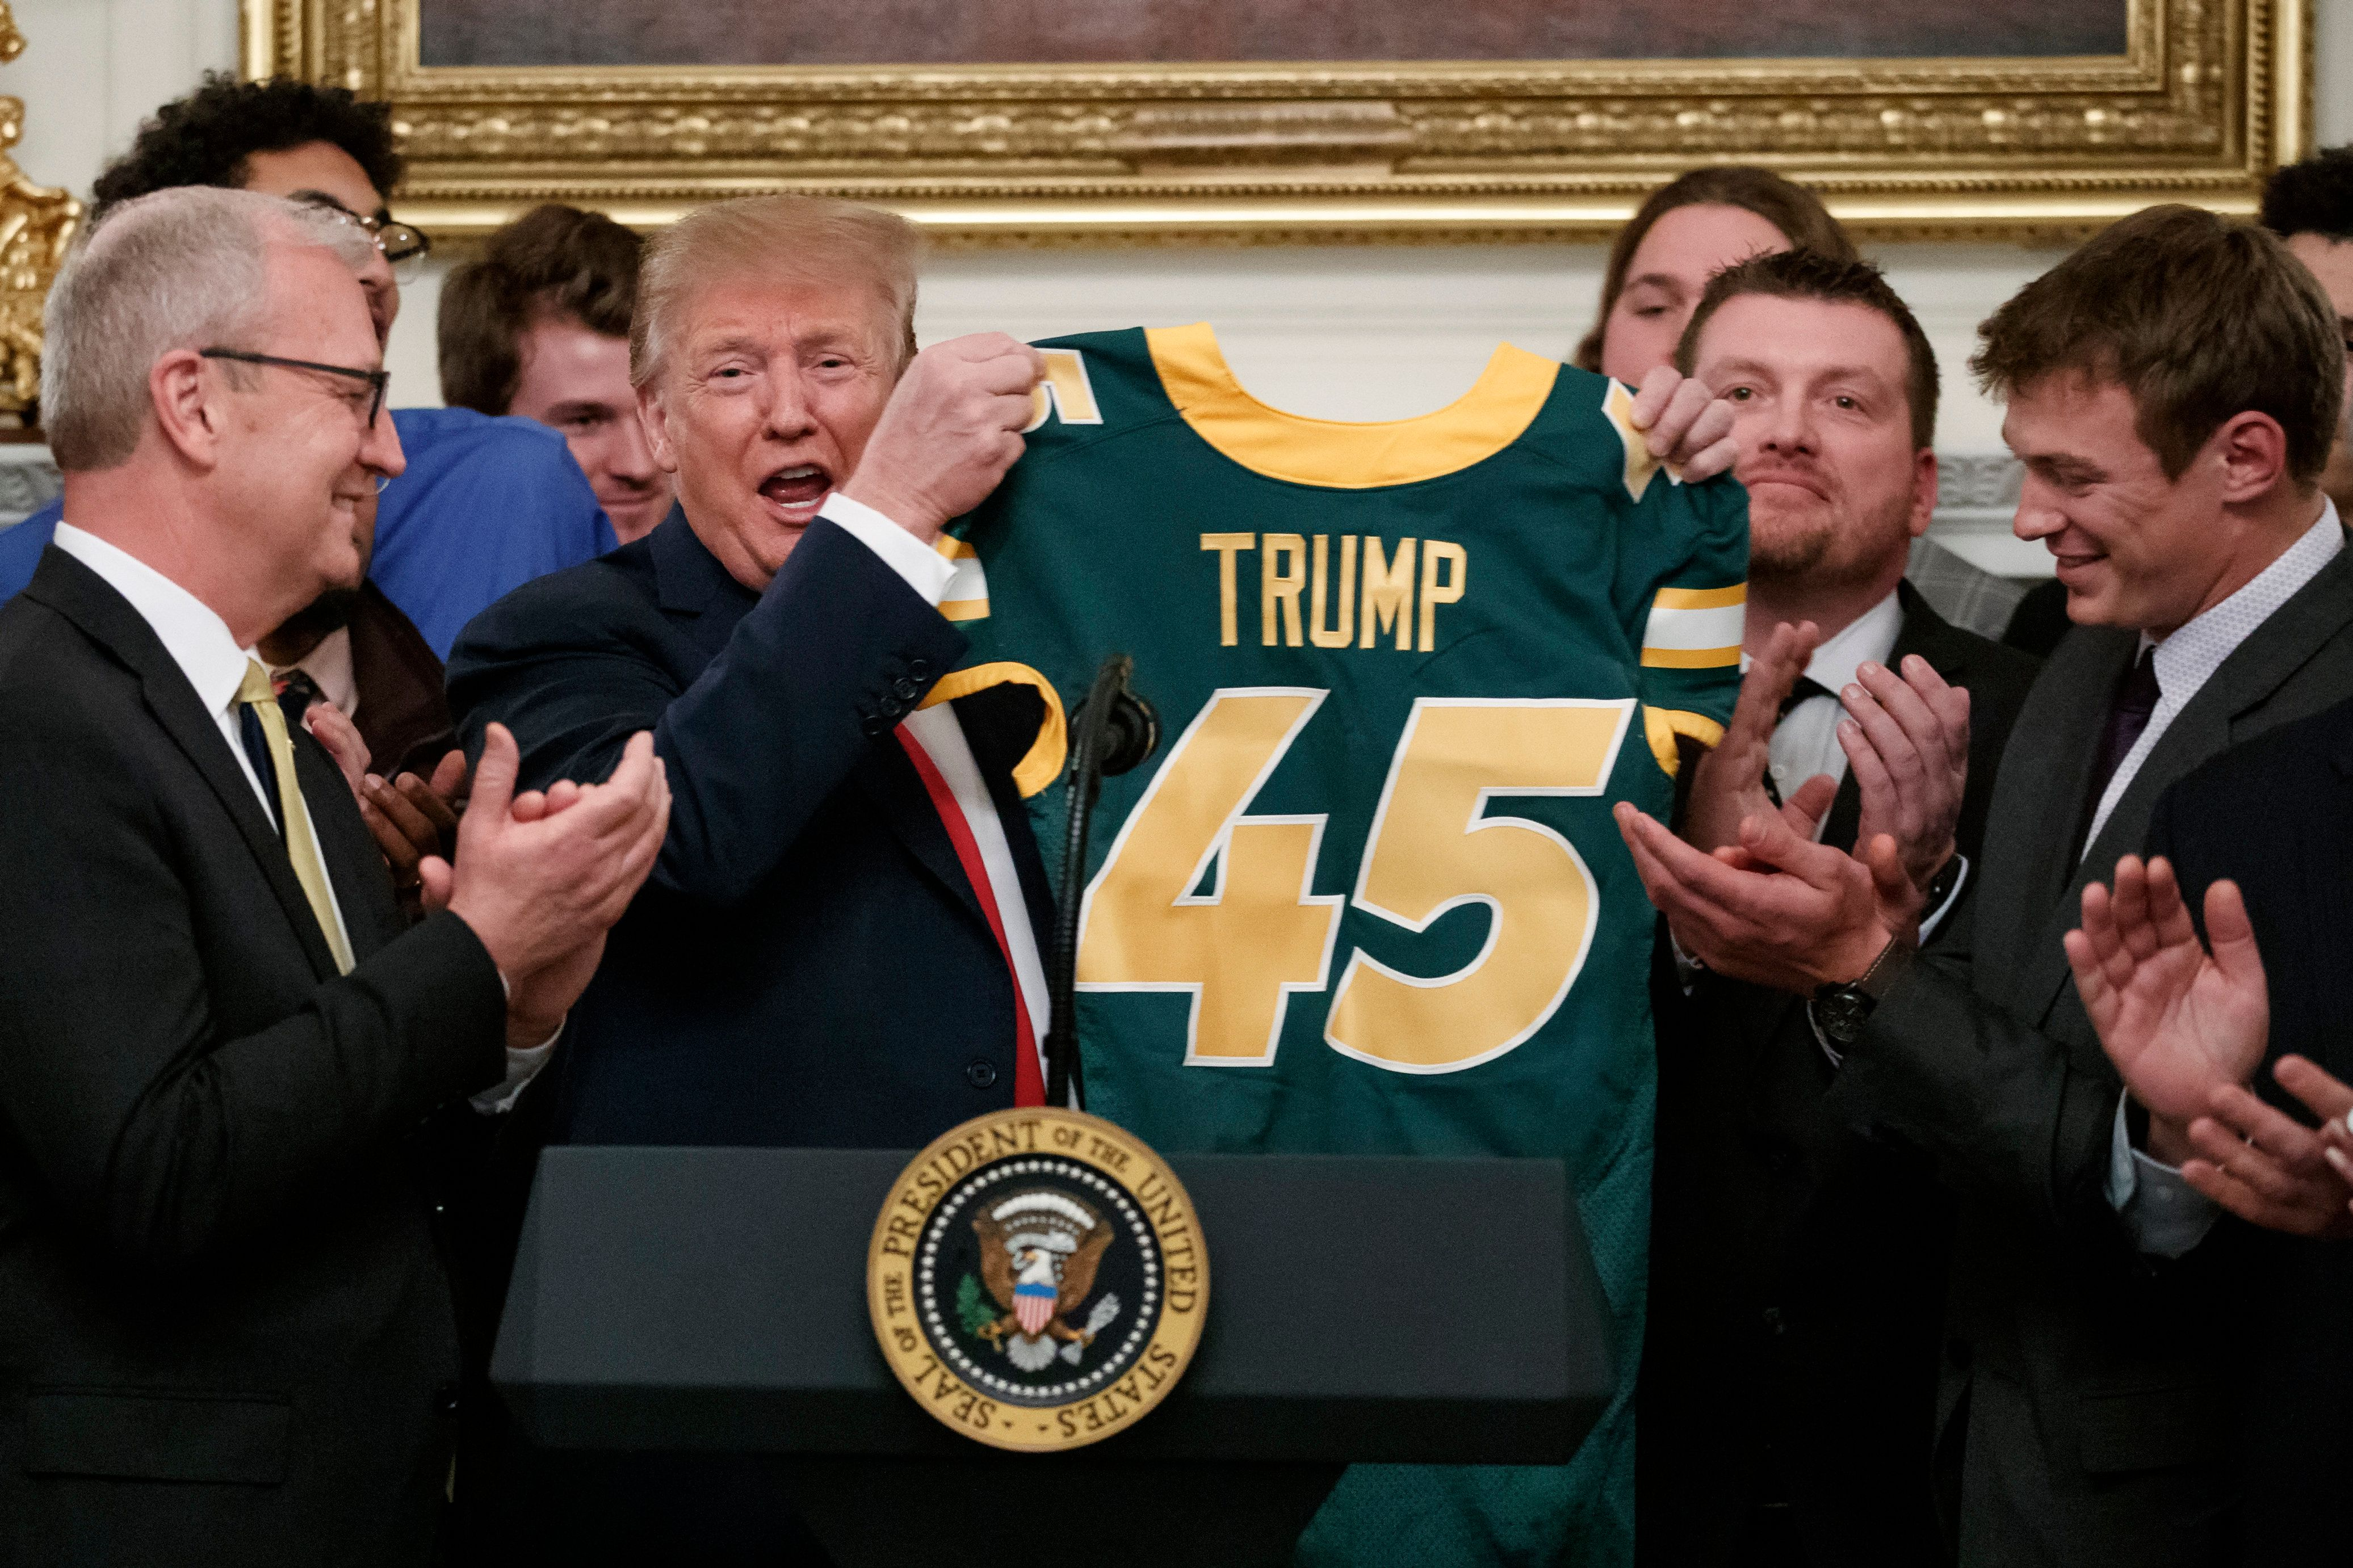 Trump was given a jersey by the football team in the state dining room of the White House